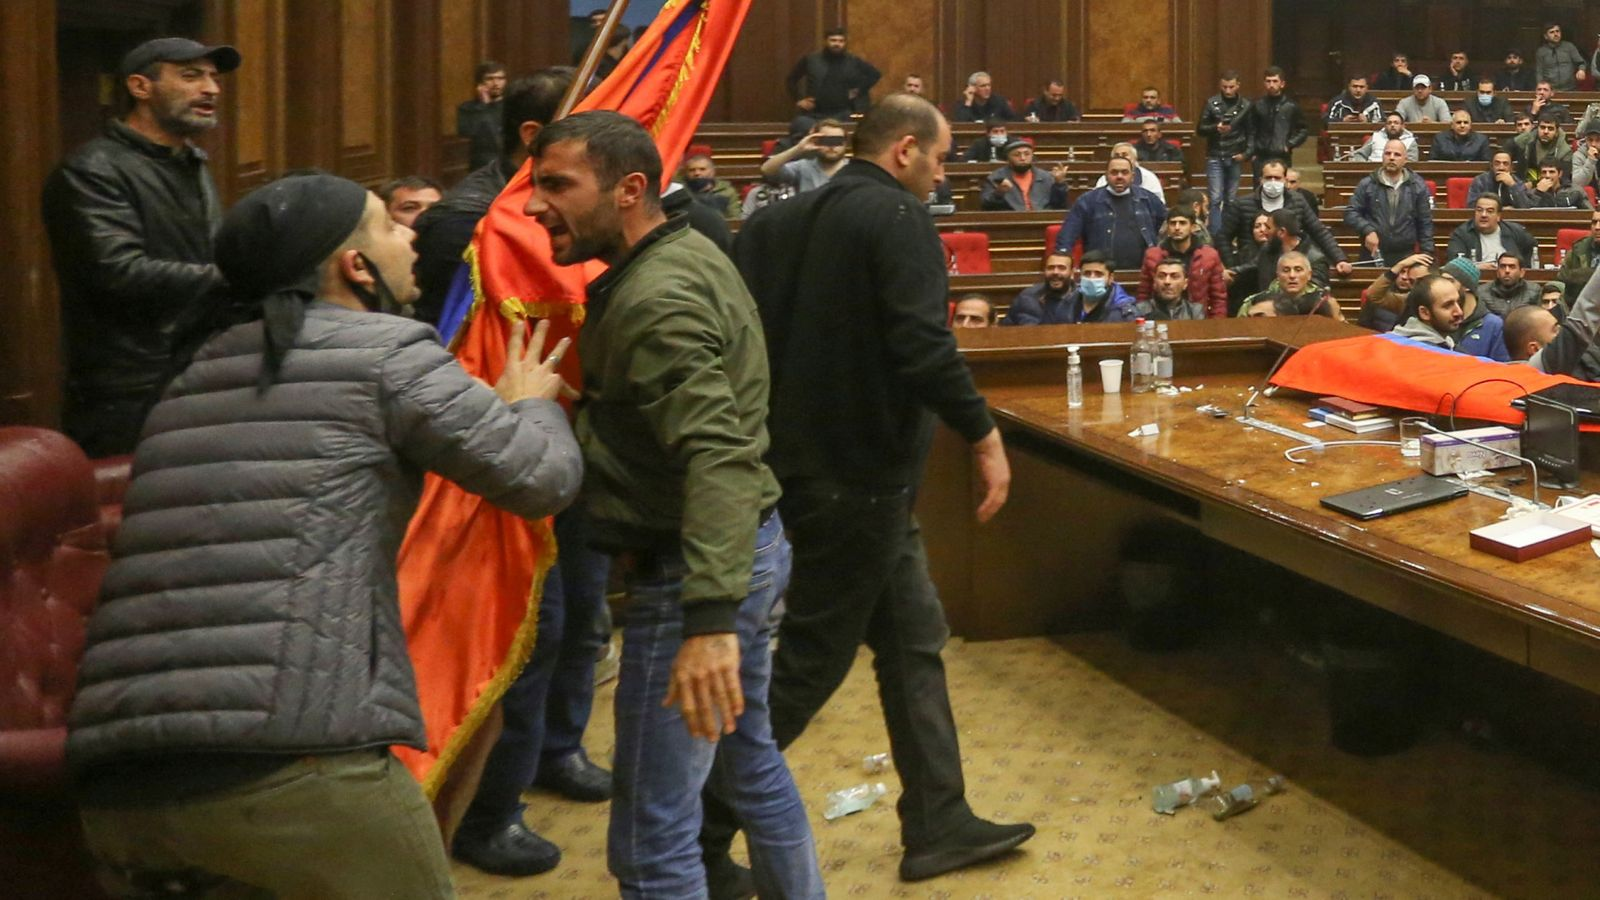 Chaos In Armenia Ramping Up As Pashinyan Refuses To Give Up Power, Leads Country Through Facebook